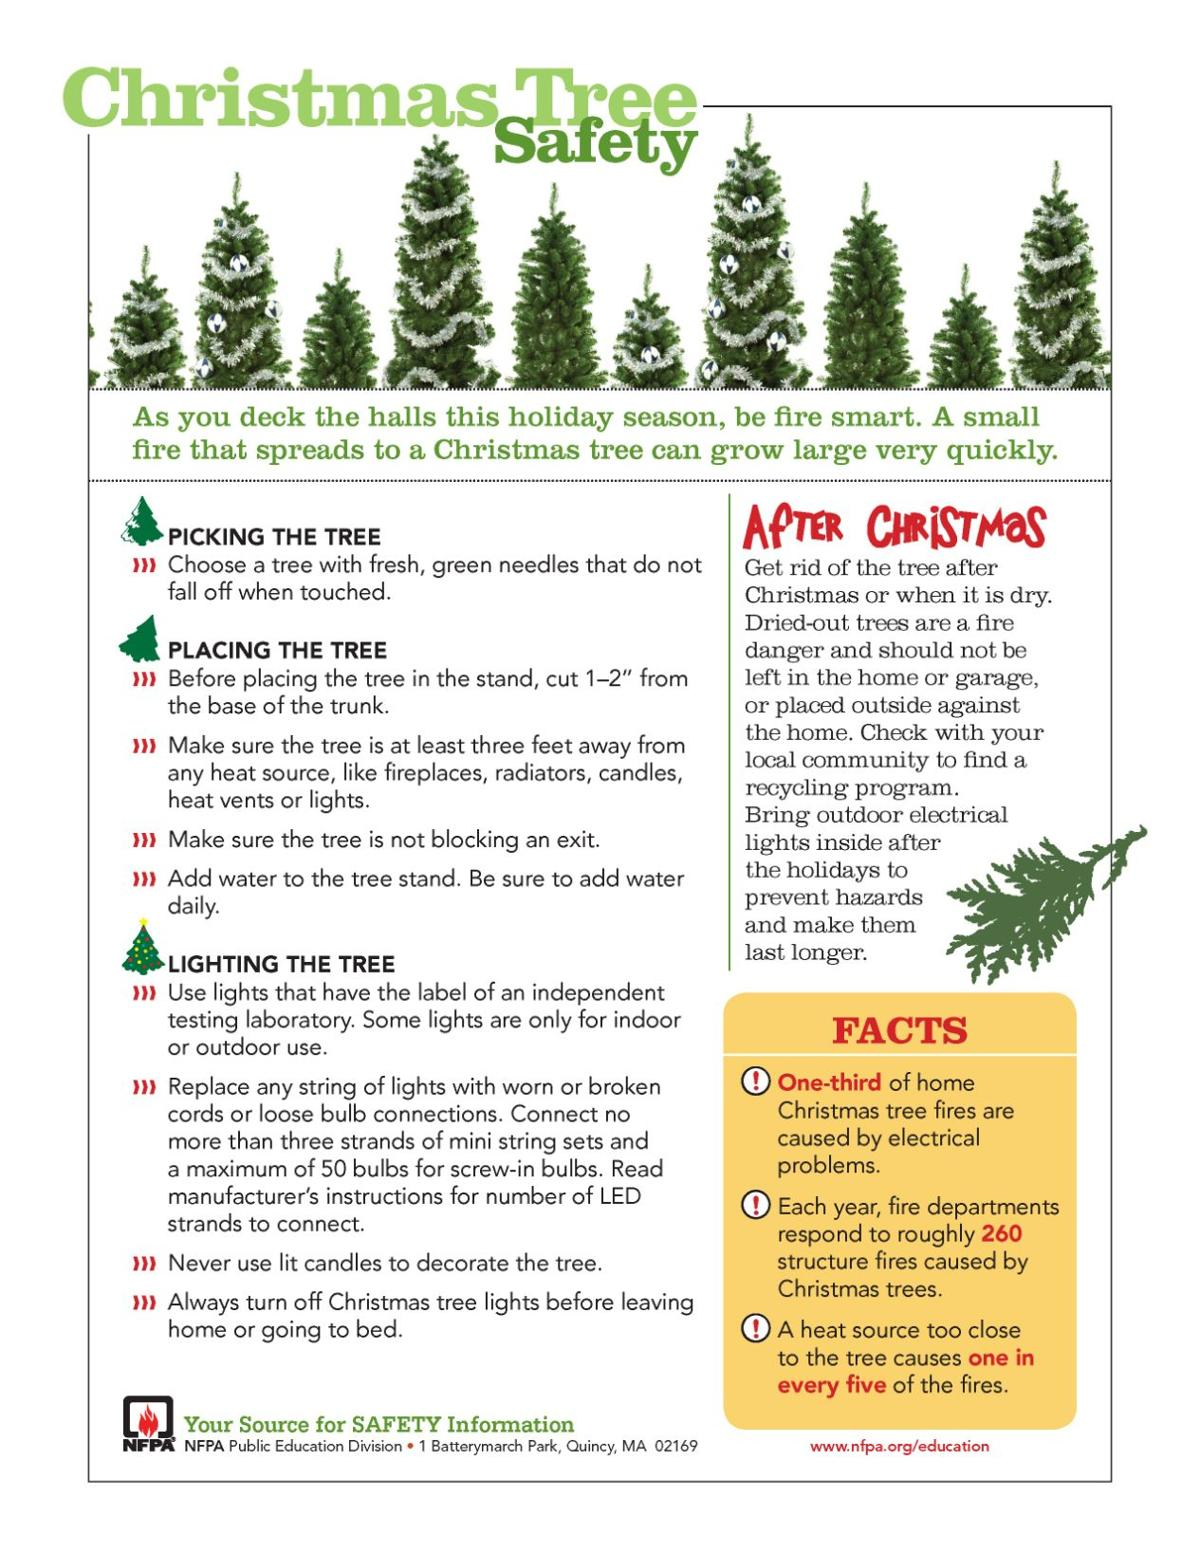 How Often To Water Christmas Tree.For A Safe Christmas Follow These Live Tree Tips Local